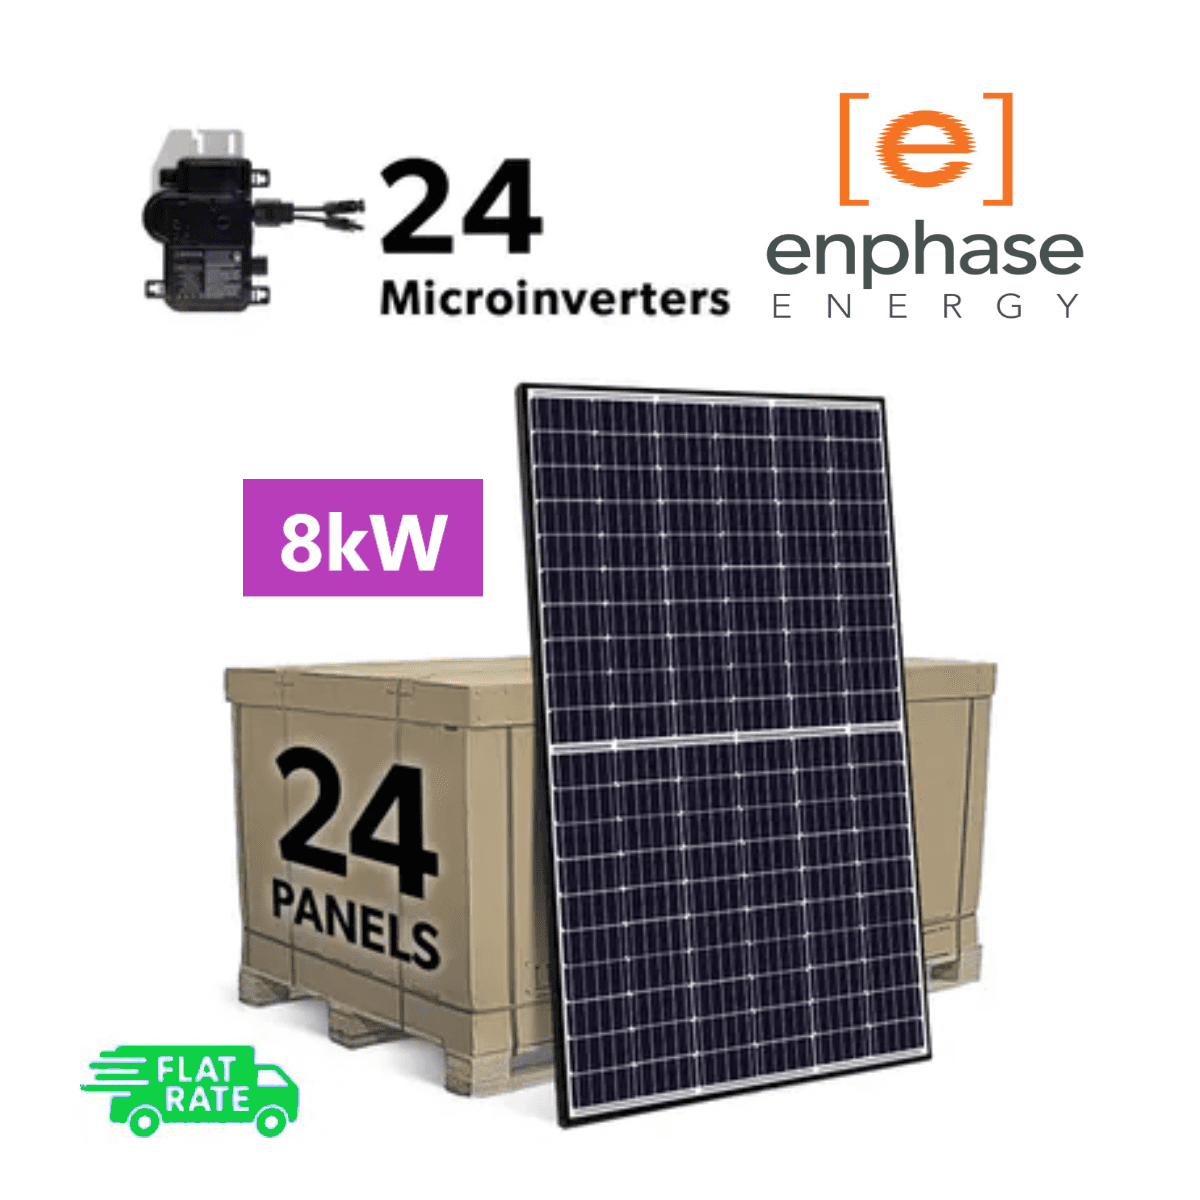 Complete Grid Tied 8kW (8000W) DIY Solar Panel System Kit with Enphase IQ+ Microinverters